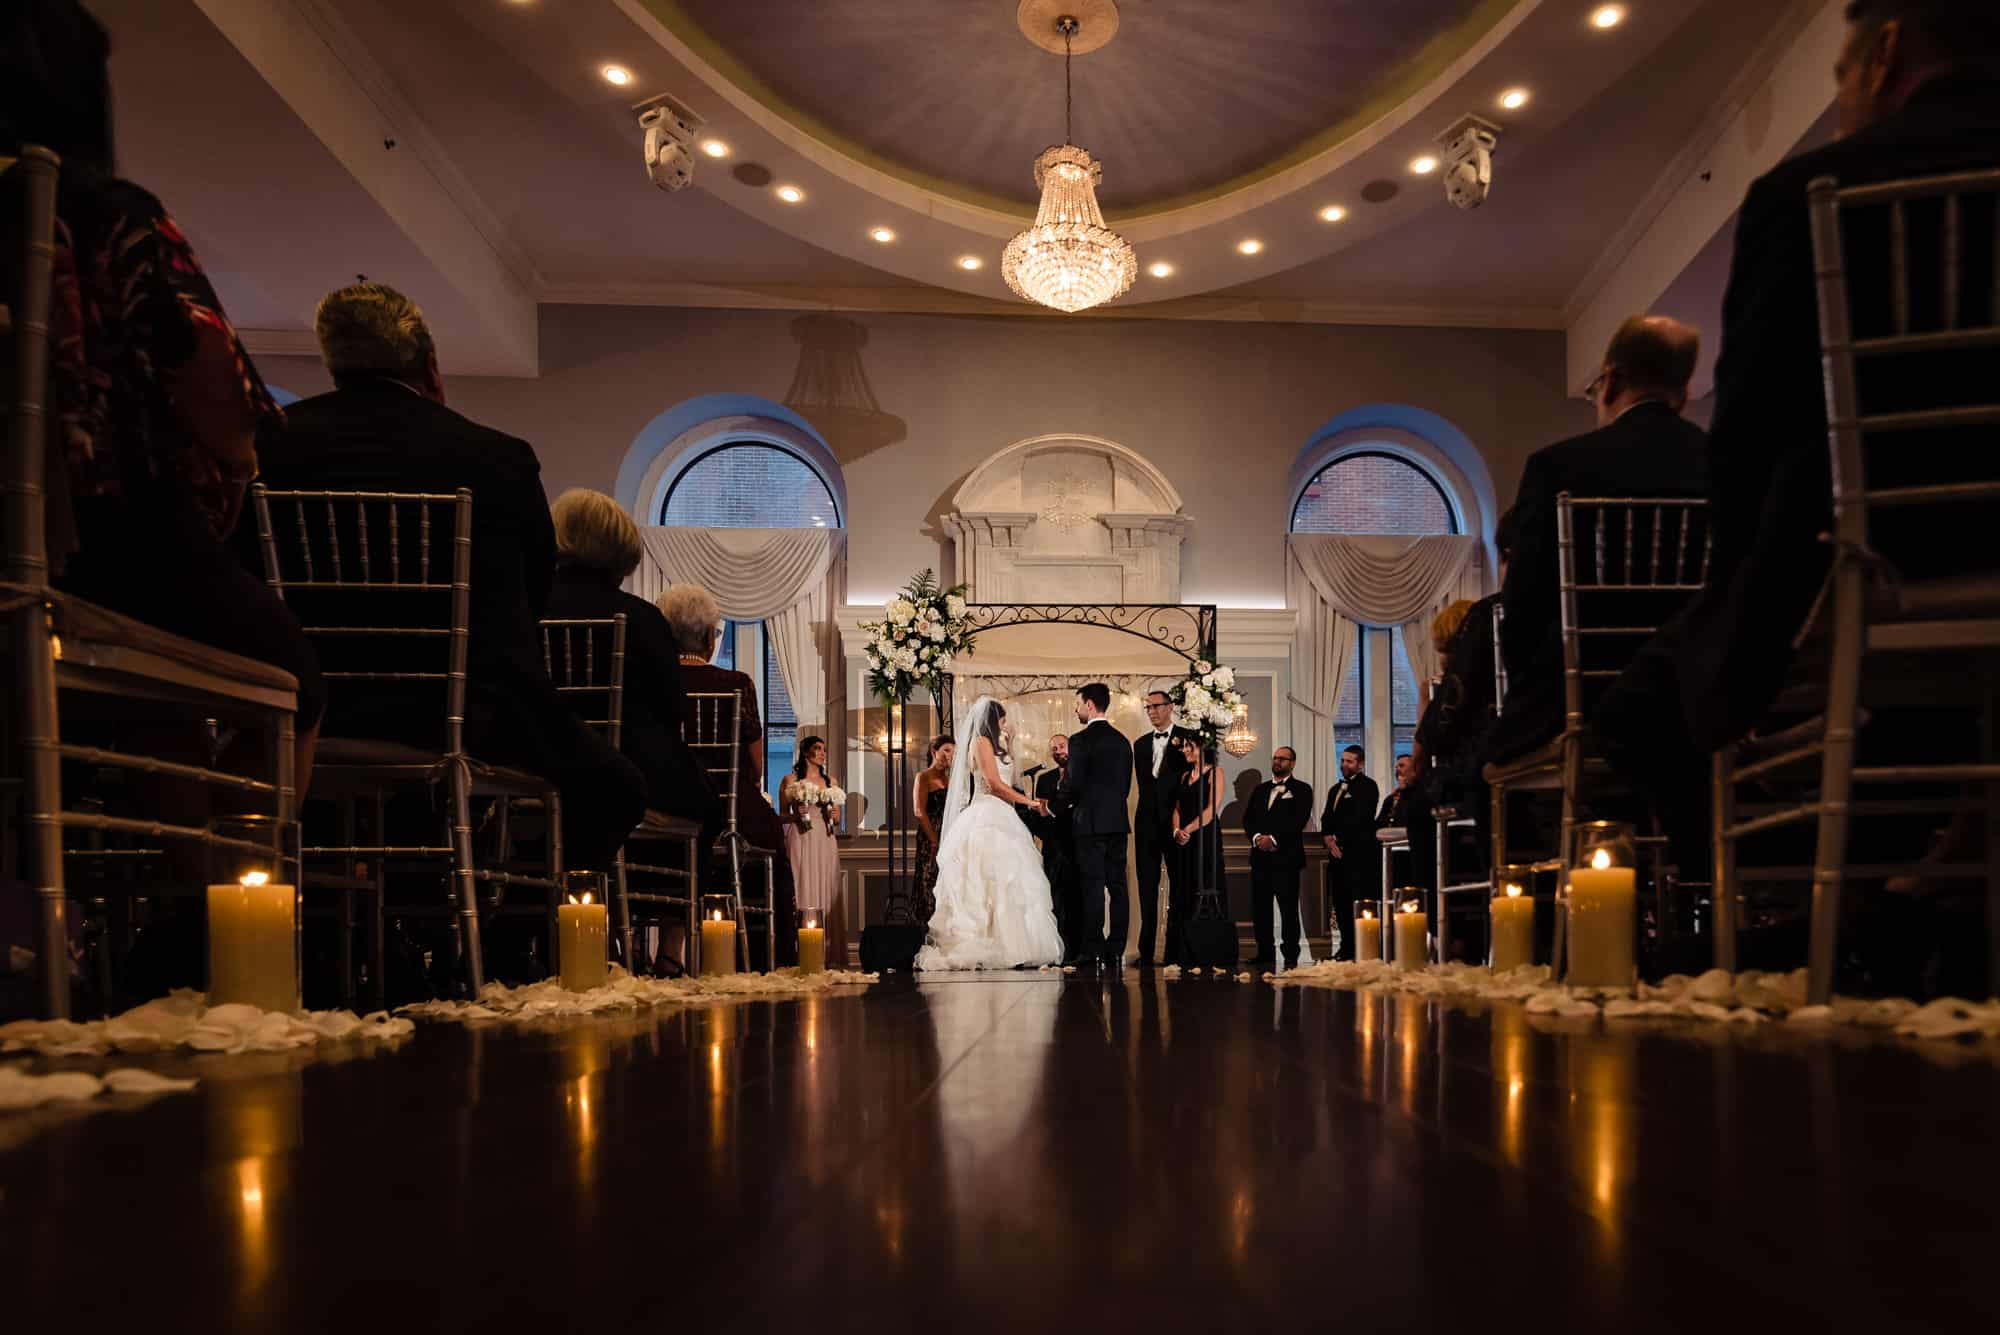 wide shot from low perspective of bride and groom during their Arts Ballroom ceremony